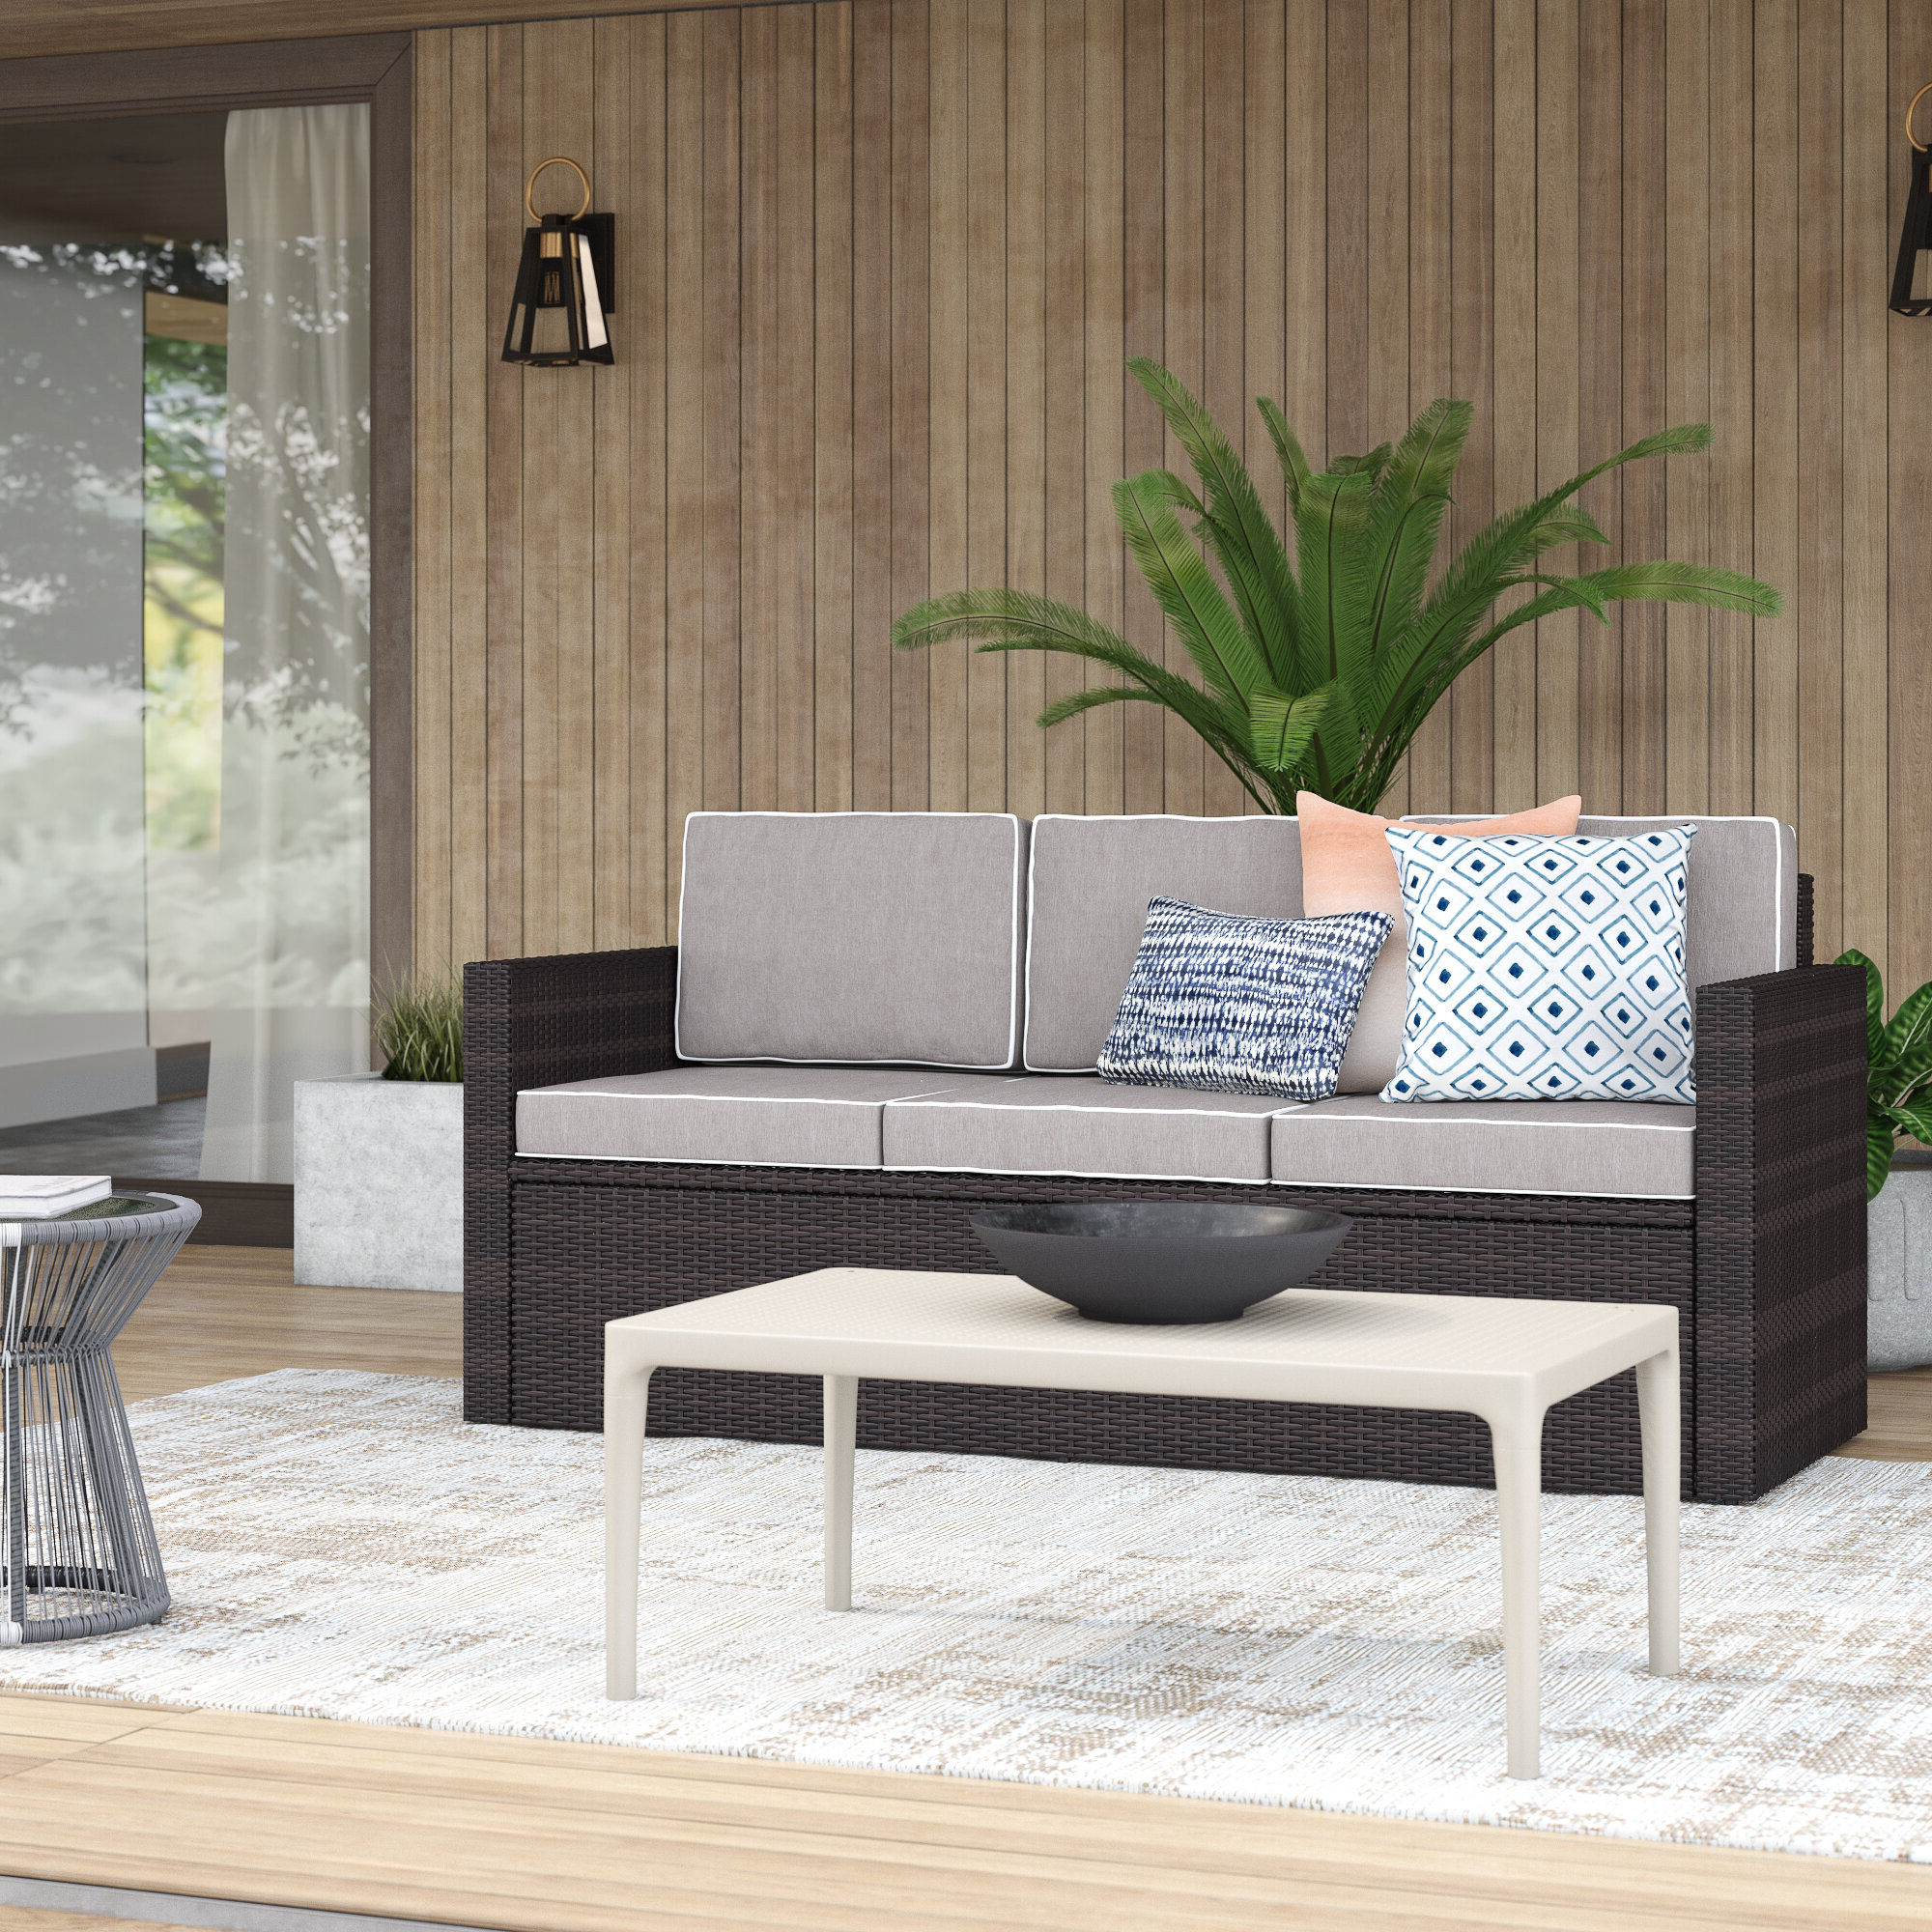 Most Recently Released Loggins Patio Sofas With Cushions Inside Belton Patio Sofa With Cushions (View 16 of 20)